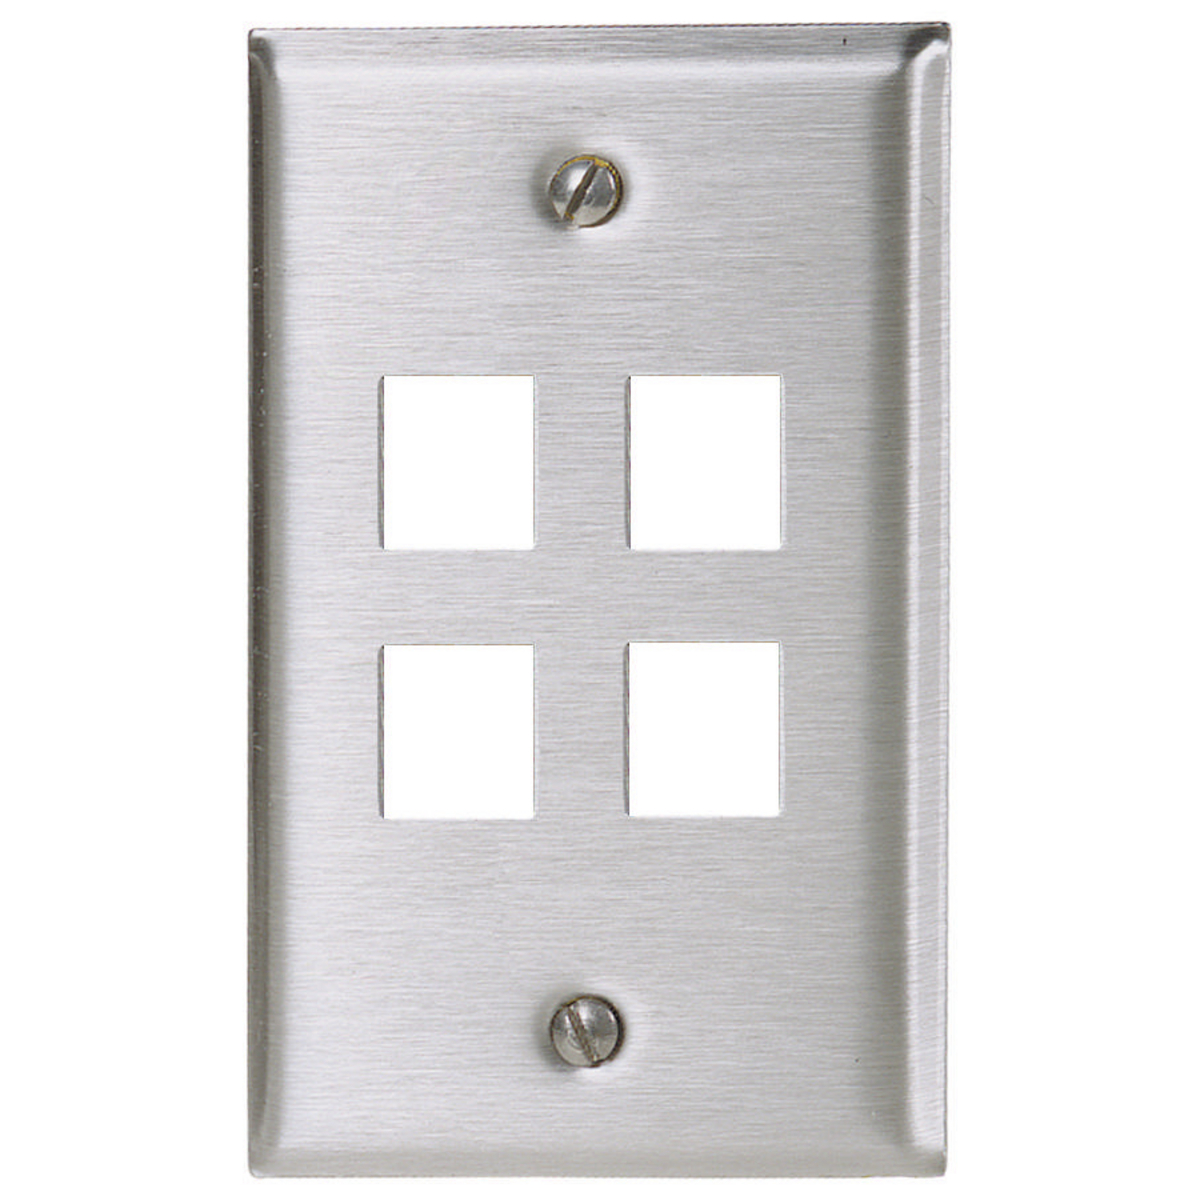 Hubbell SSF14 1-Gang Stainless Steel 4-Port Data Communication Face Plate